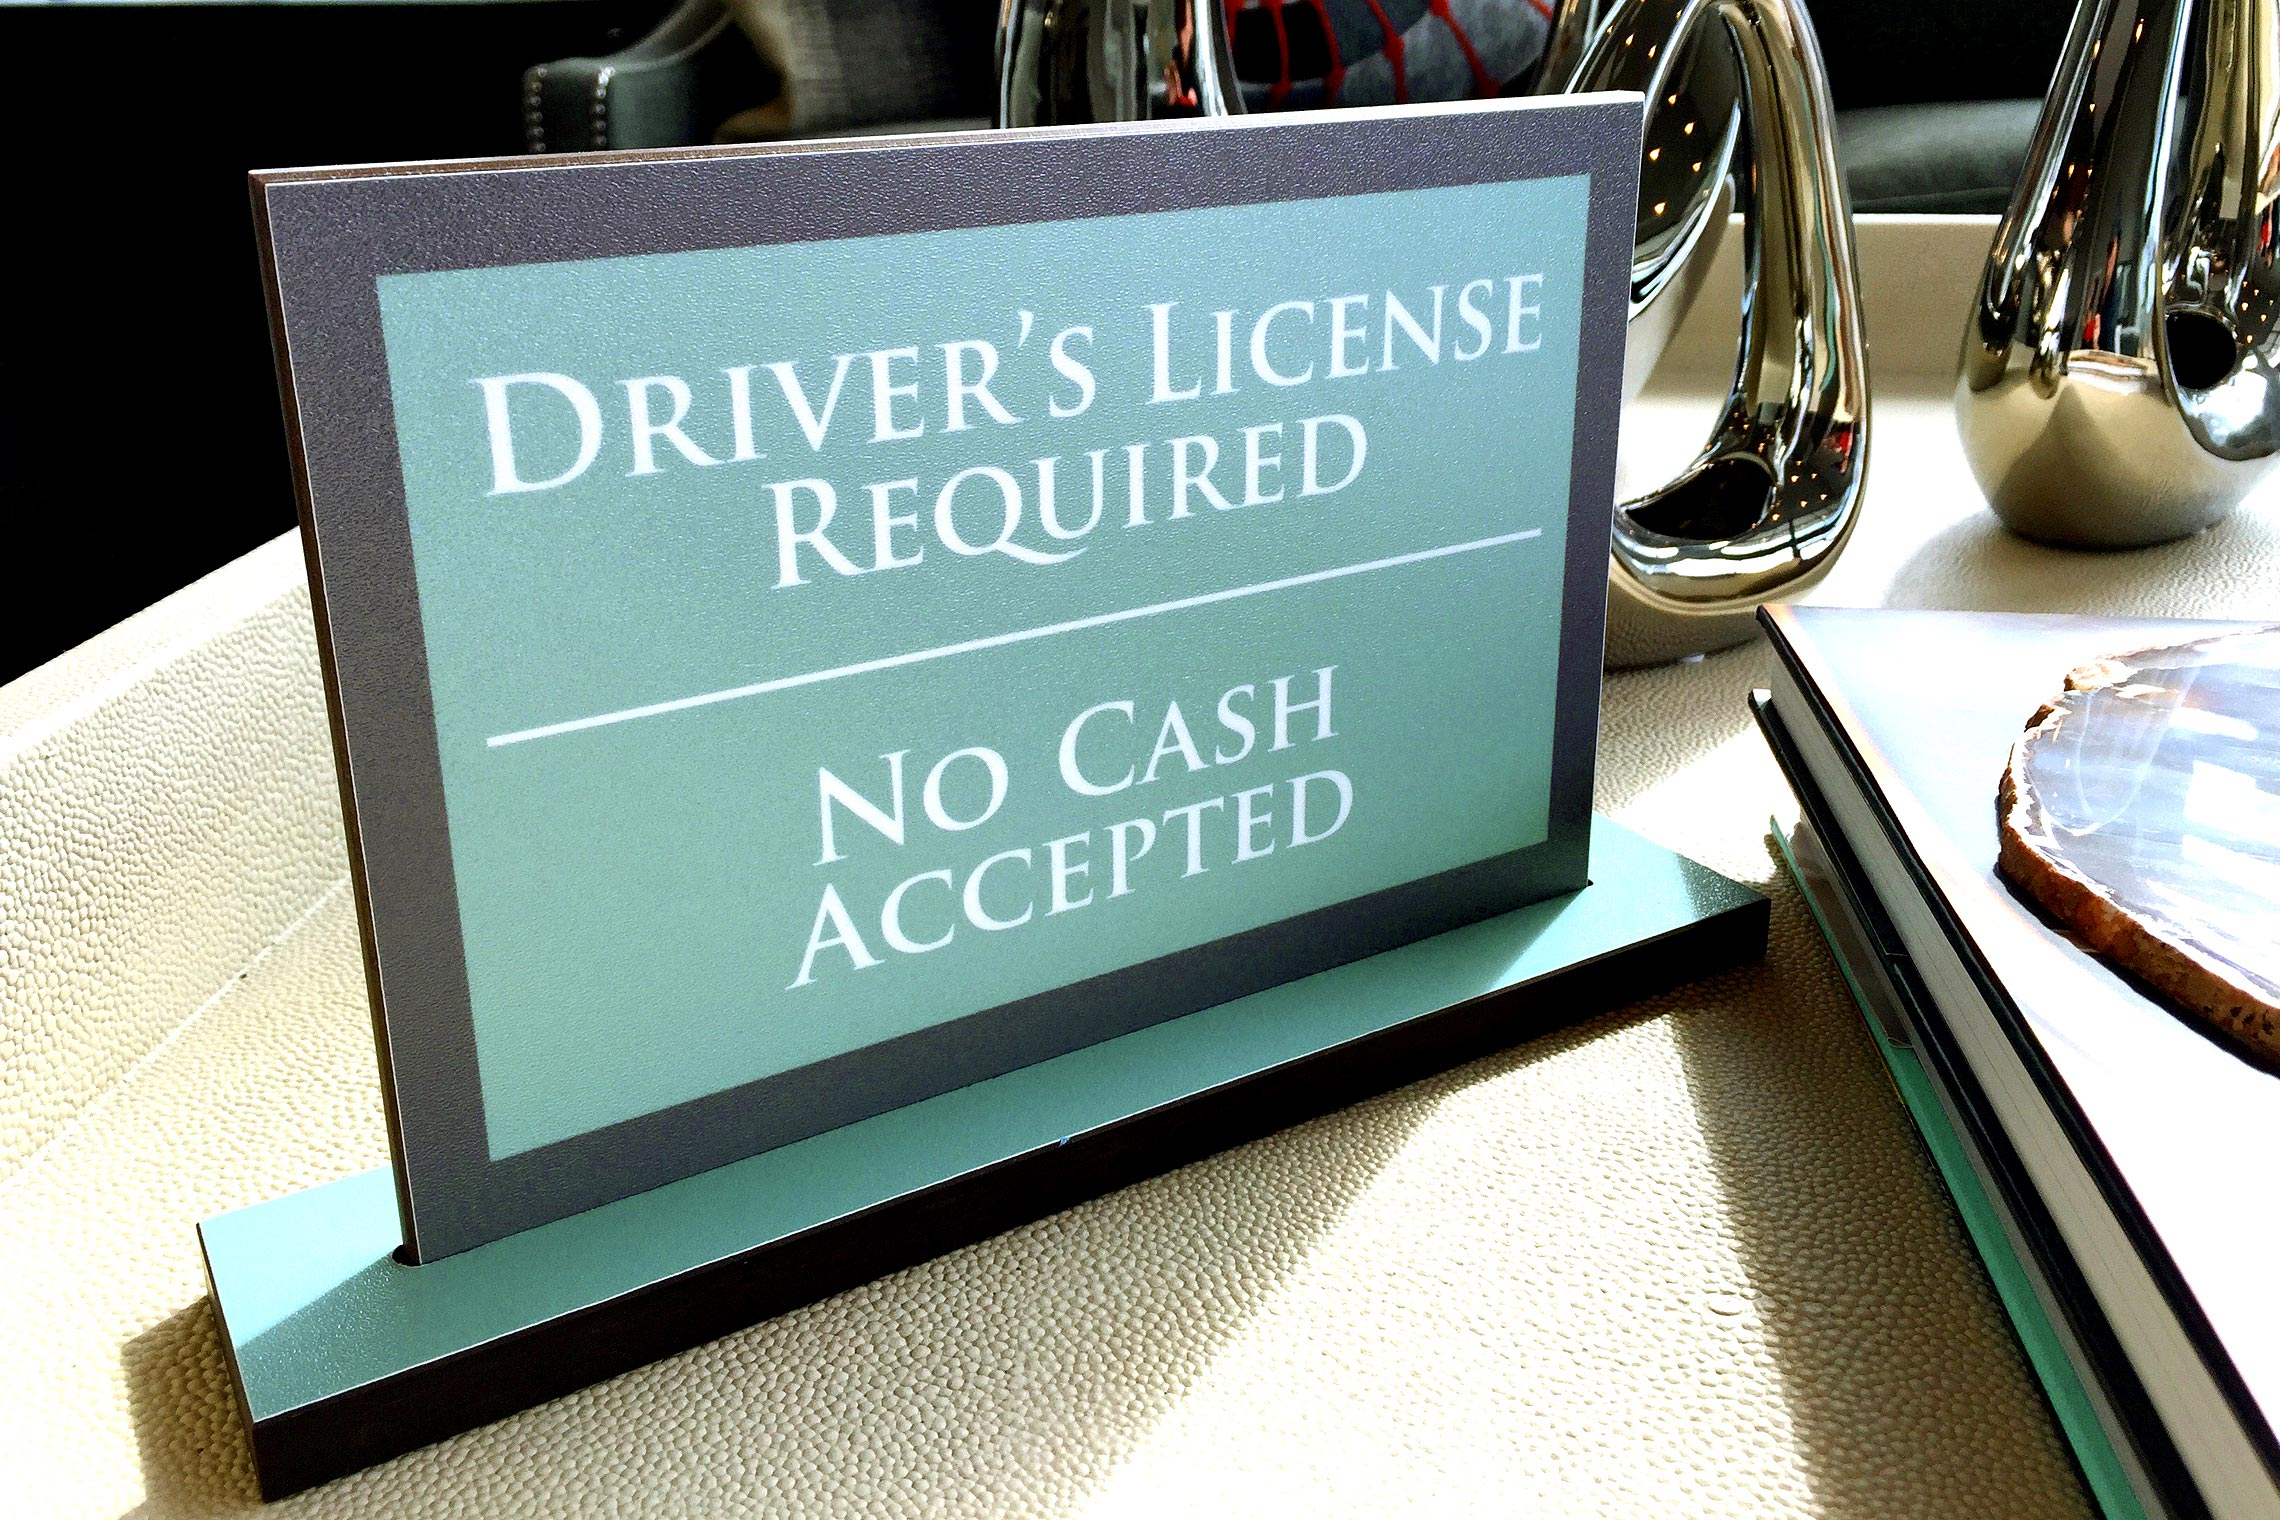 Aura Memorial Driver's License Required No Cash Accepted Desk Set in Leasing Office